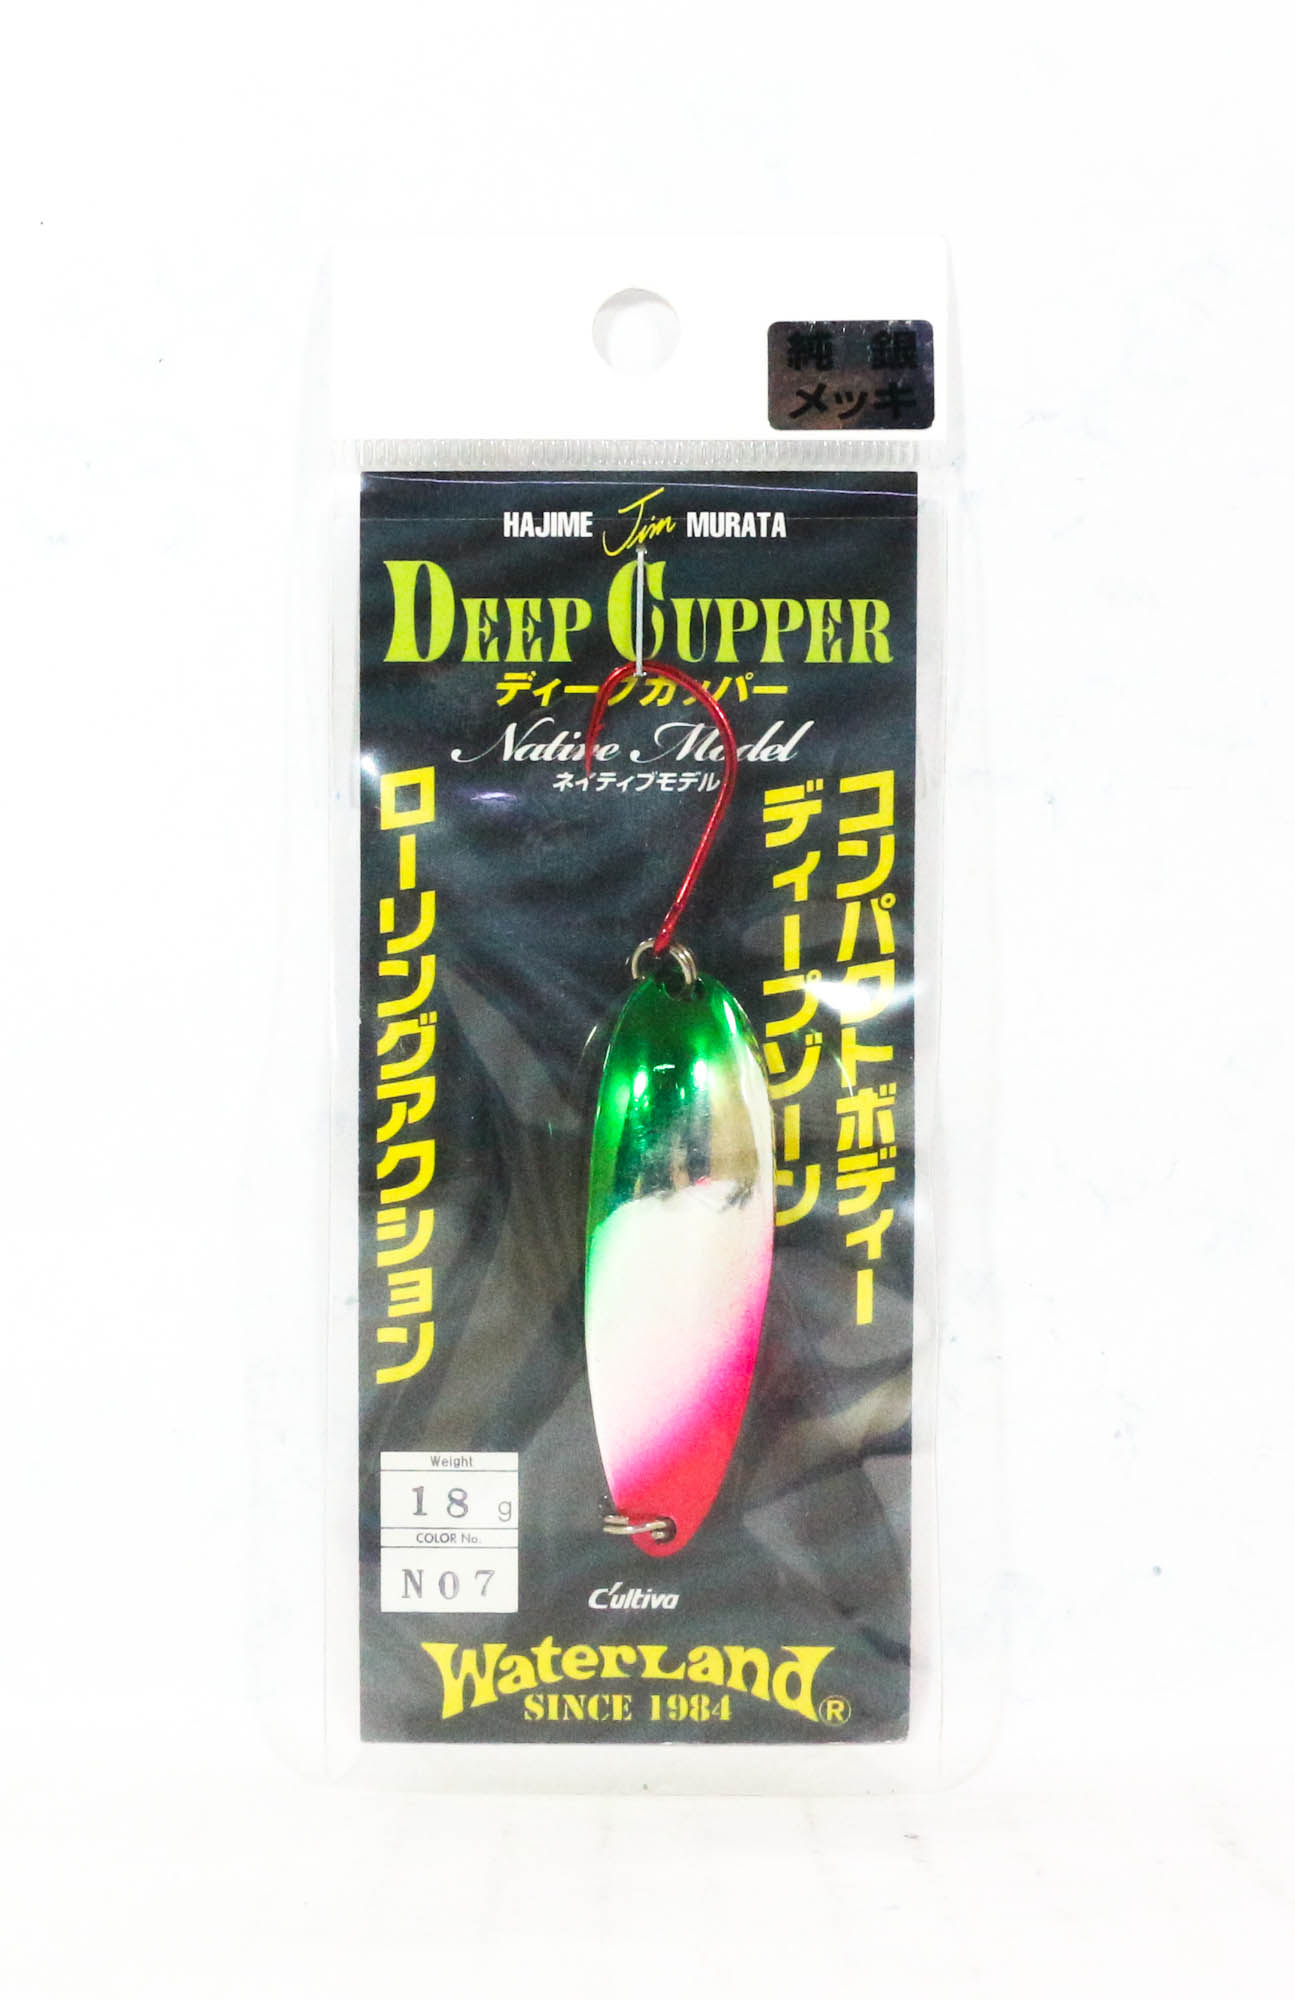 Water Land Spoon Deep Cupper Native 18 grams Sinking Lure 7 (7534)